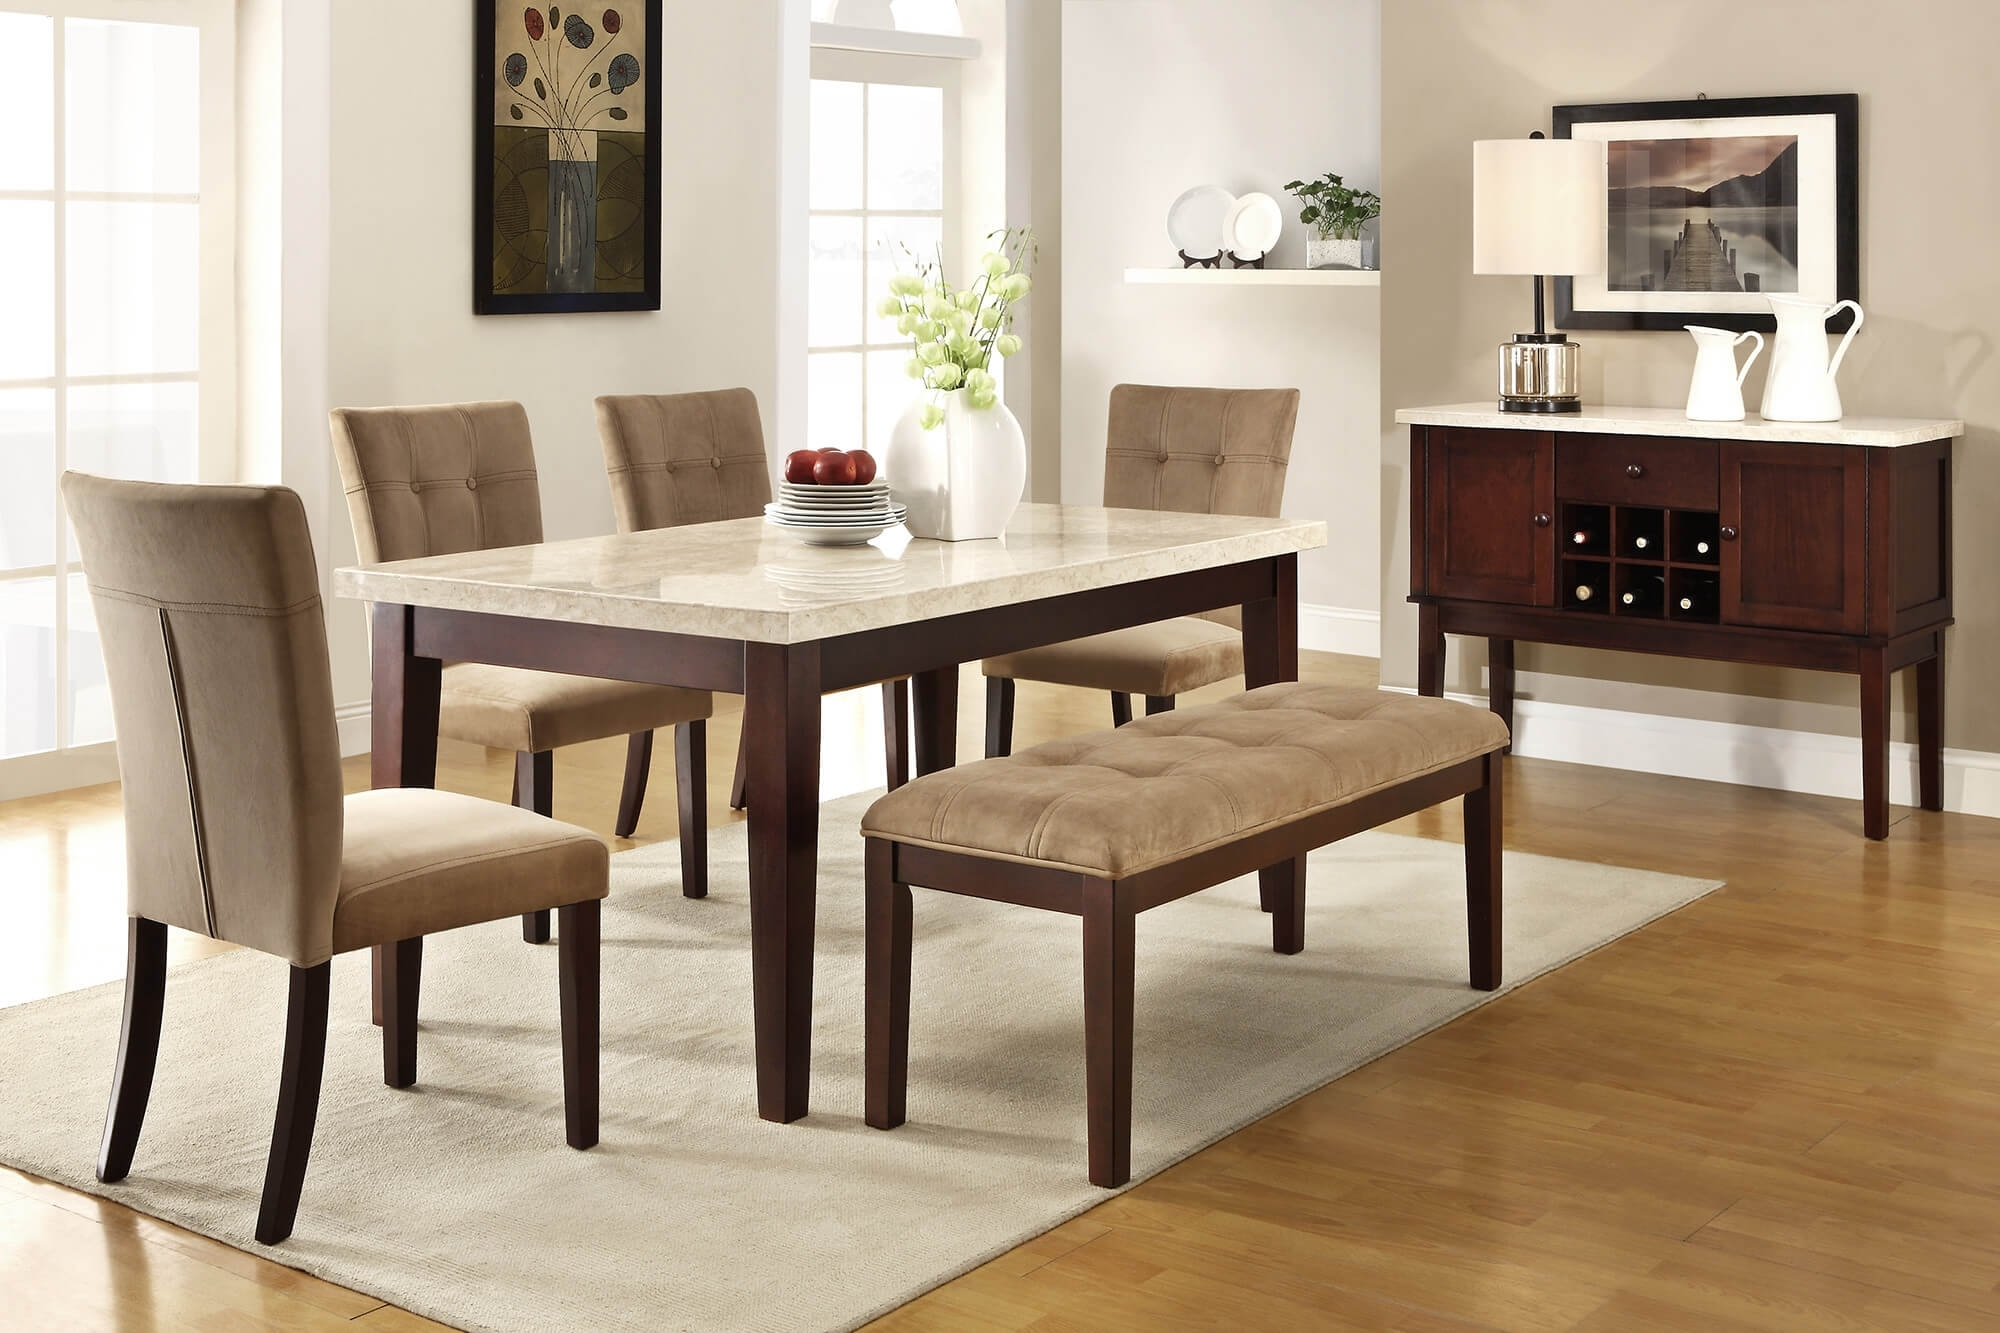 26 Dining Room Sets (Big And Small) With Bench Seating (2018) Pertaining To Most Recent Market 6 Piece Dining Sets With Side Chairs (Photo 5 of 20)